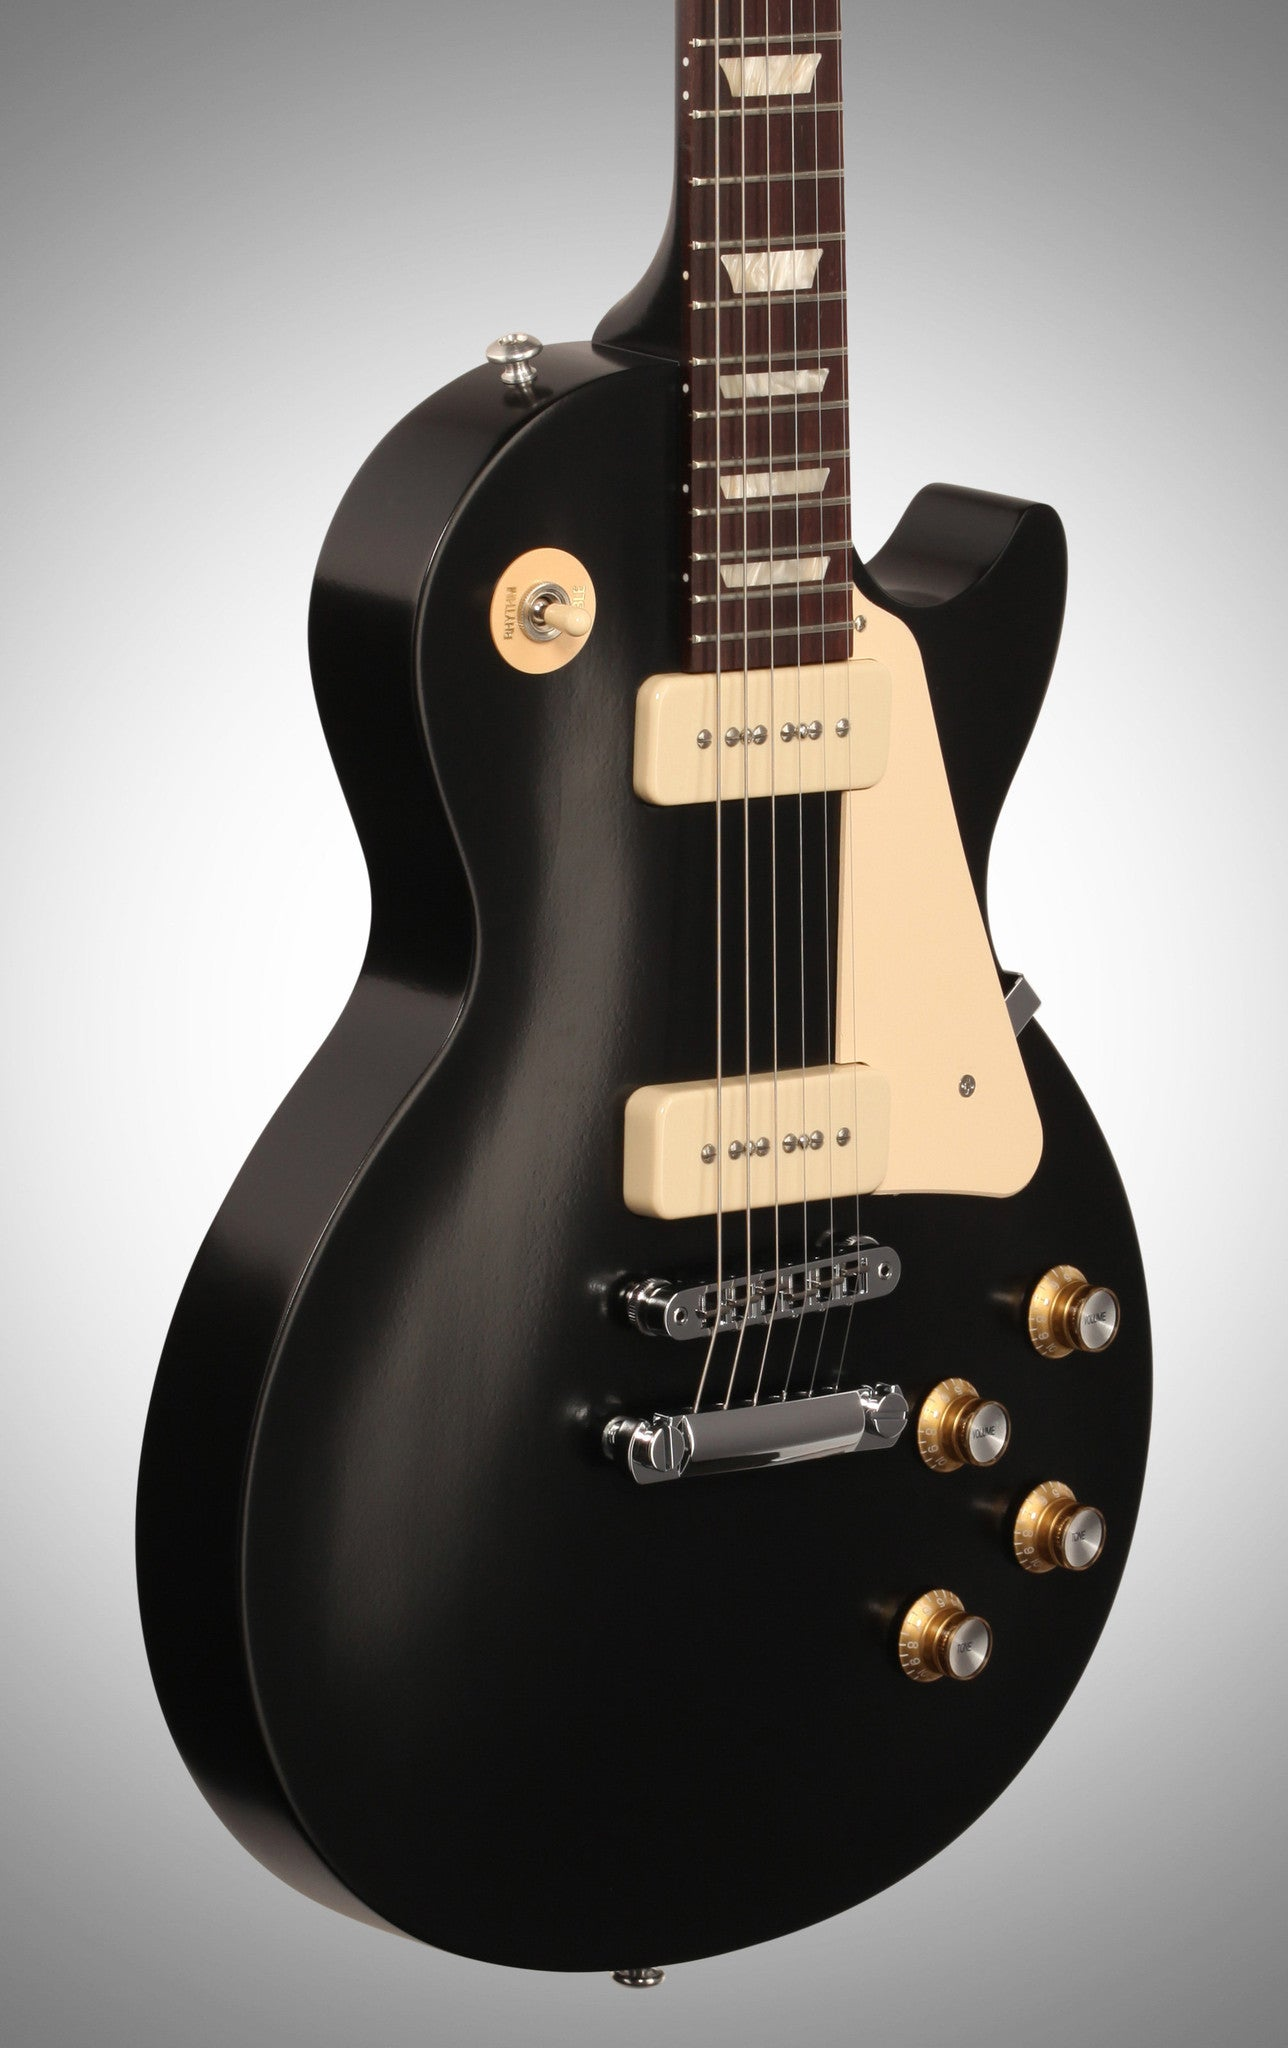 Gibson 2016 Les Paul '60s Tribute T Electric Guitar (with Gig Bag), Ebony Gibson - HIENDGUITAR.COM